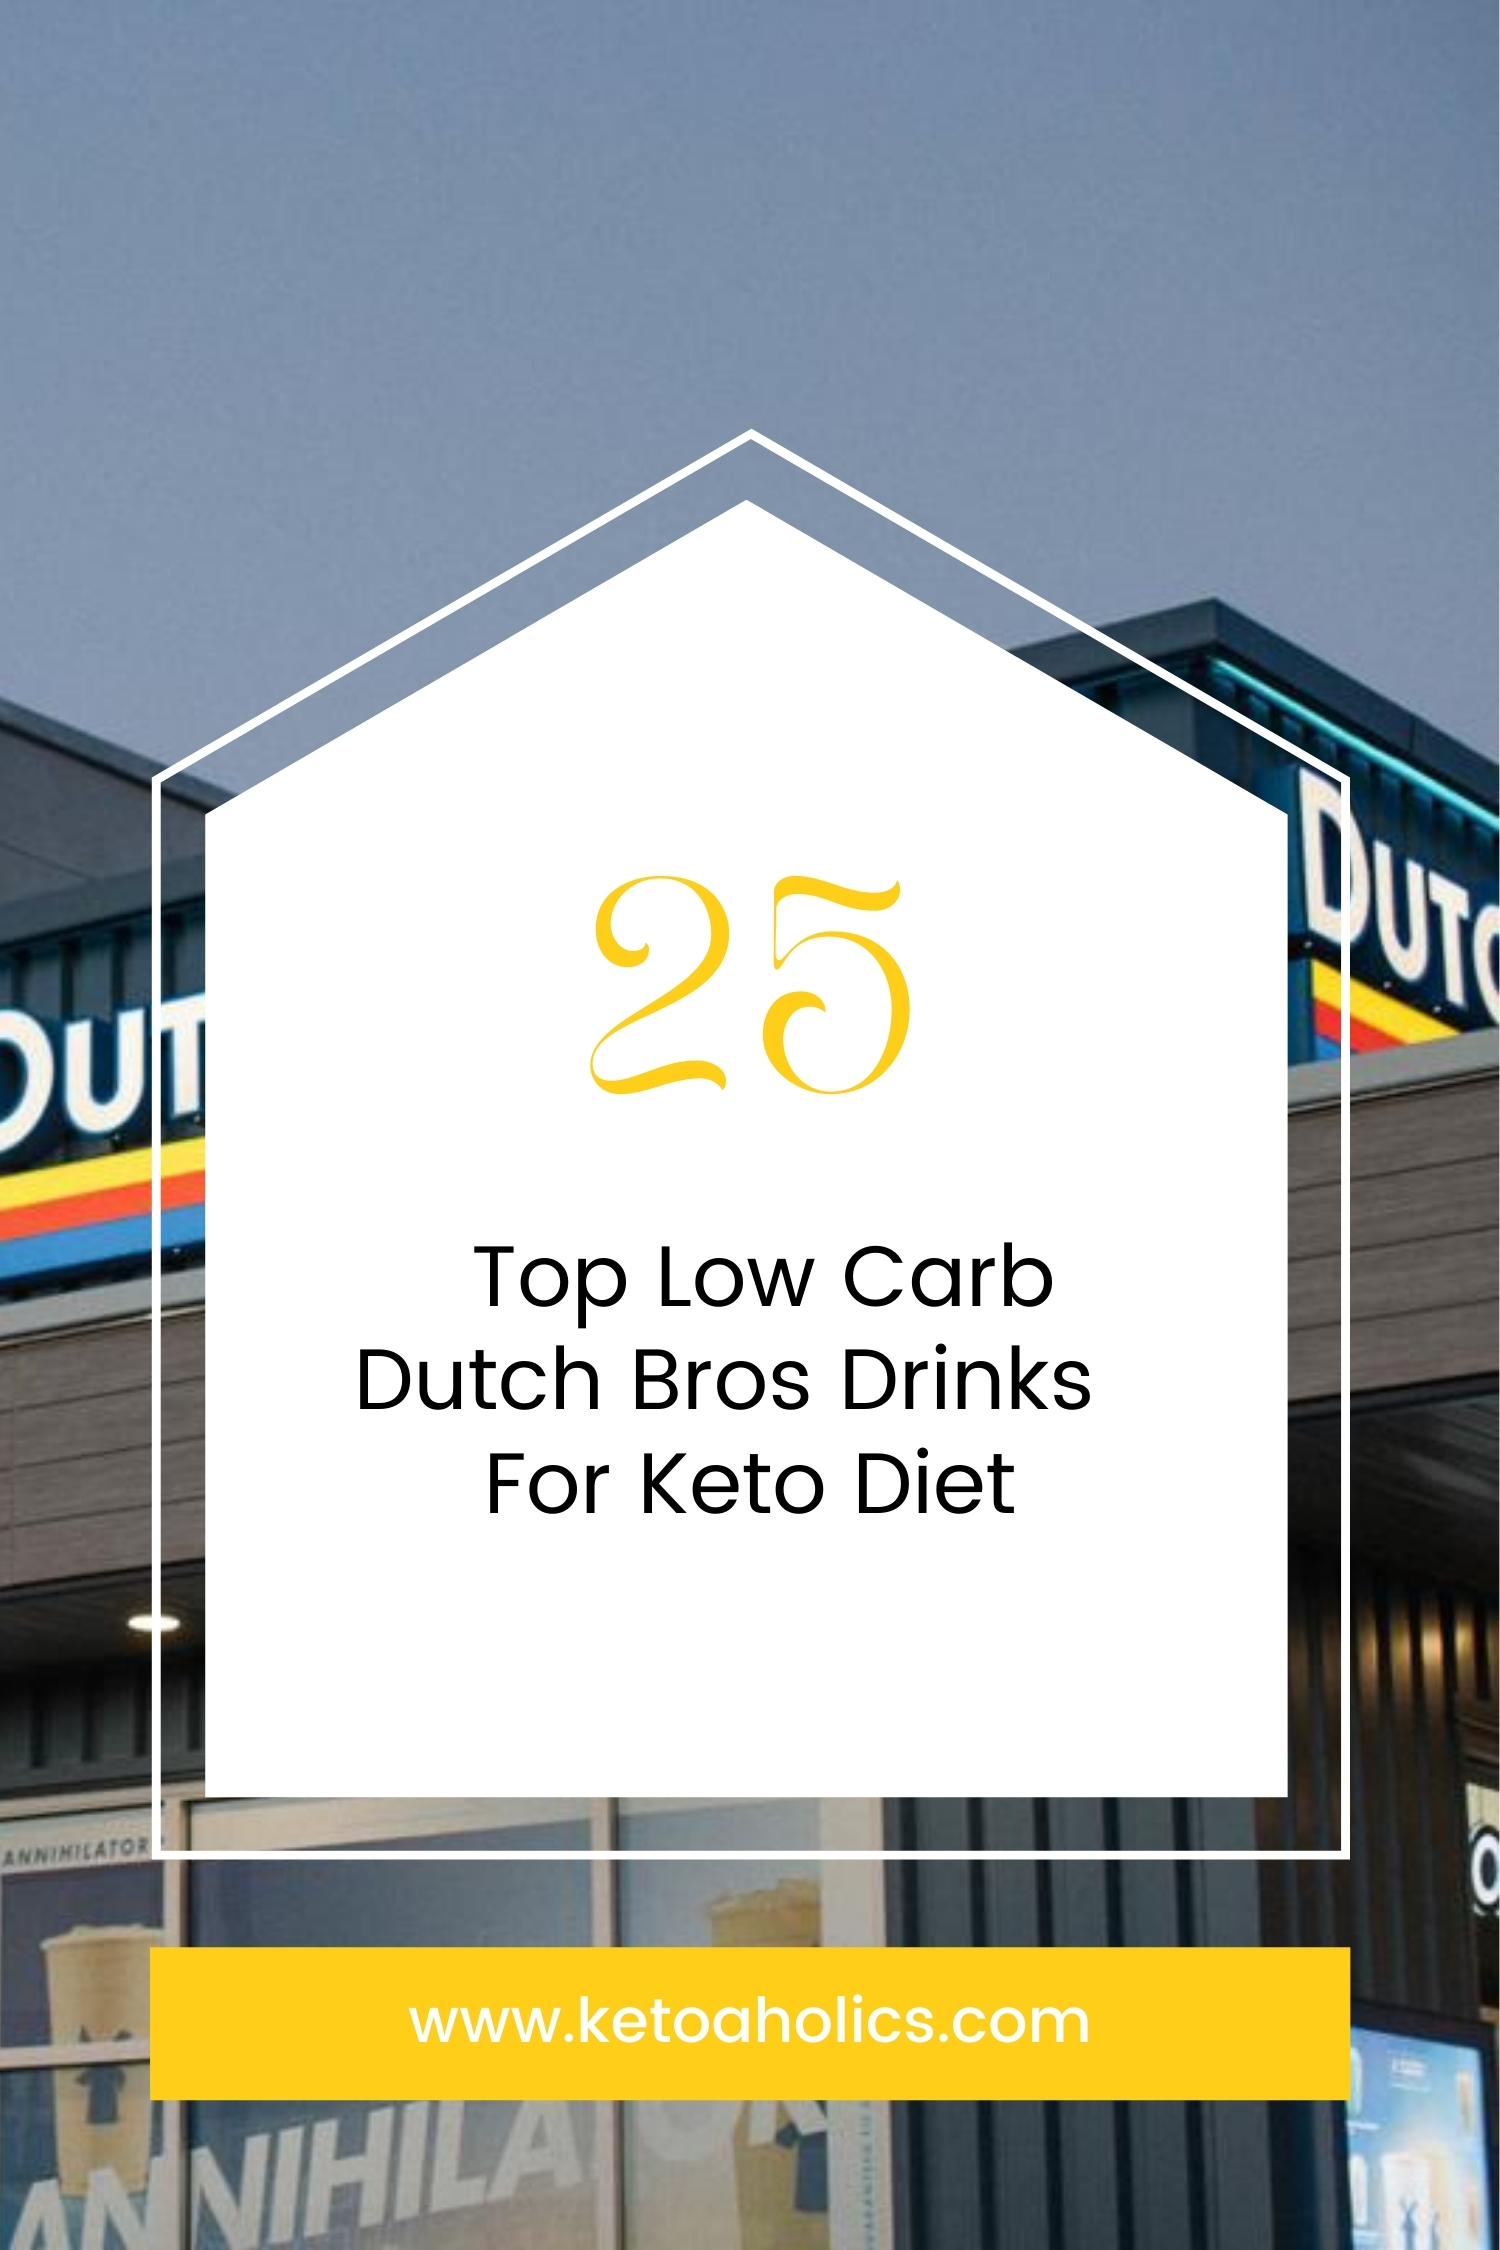 image of Top 25 Low Carb Dutch Bros Drinks For Keto Diet